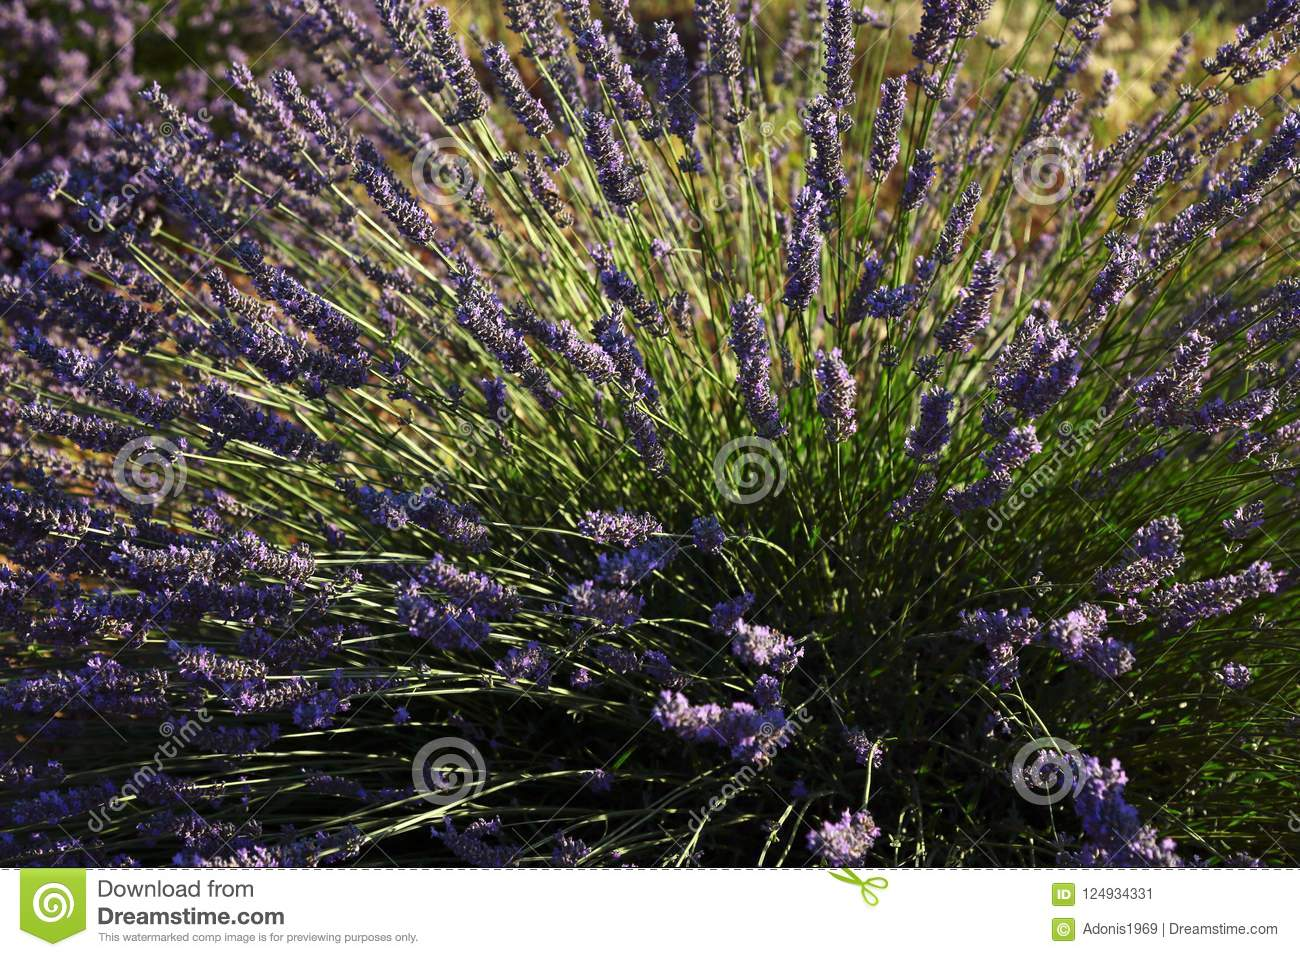 Lavender plant in field